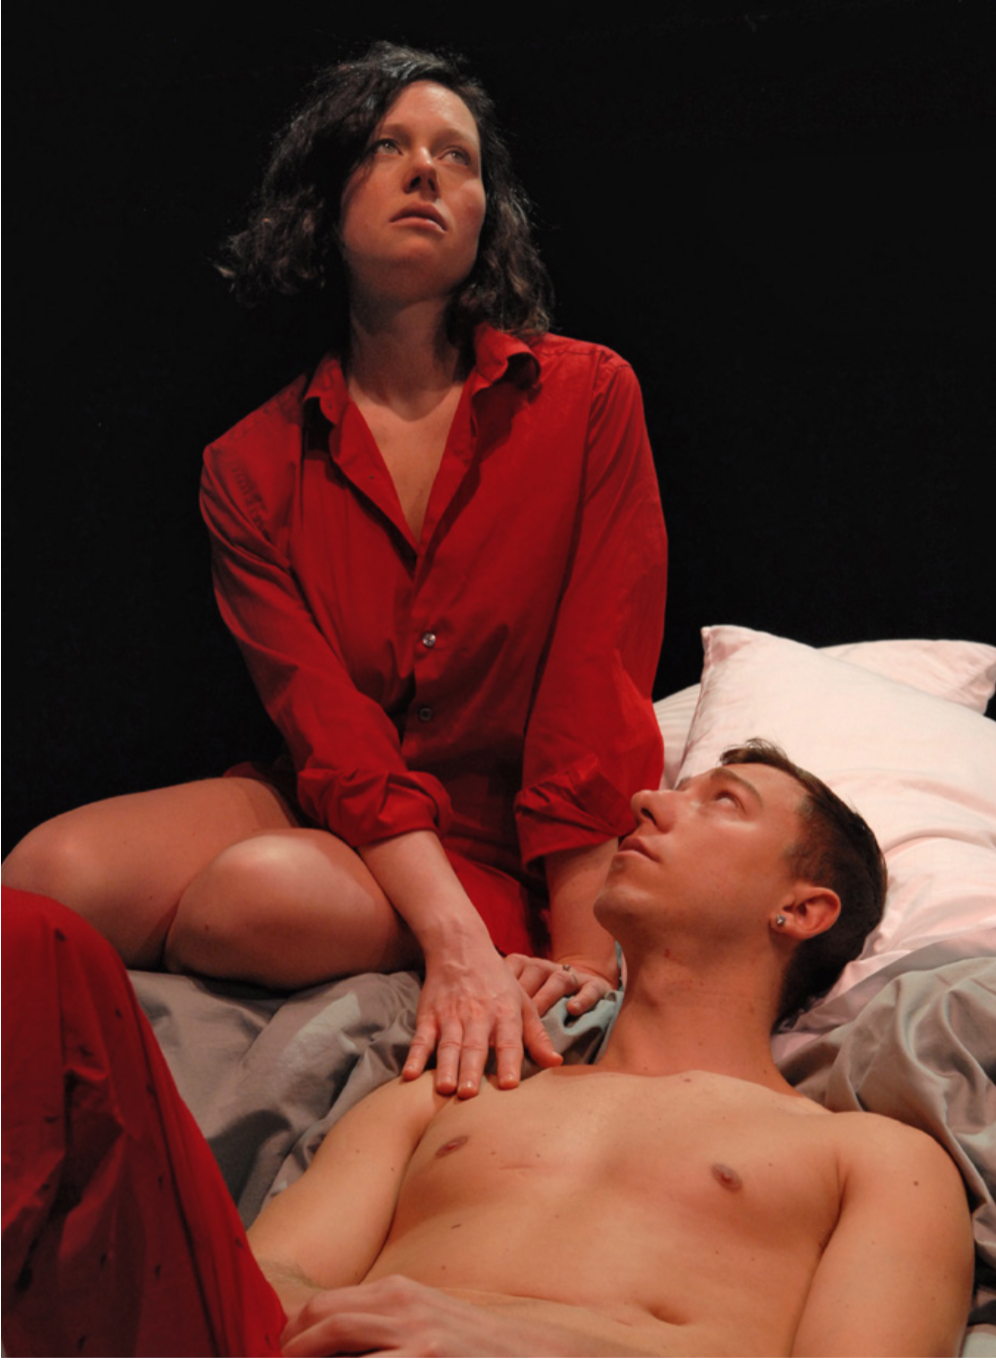 Anna Bottsford and Elliot Sicard in Unsafe